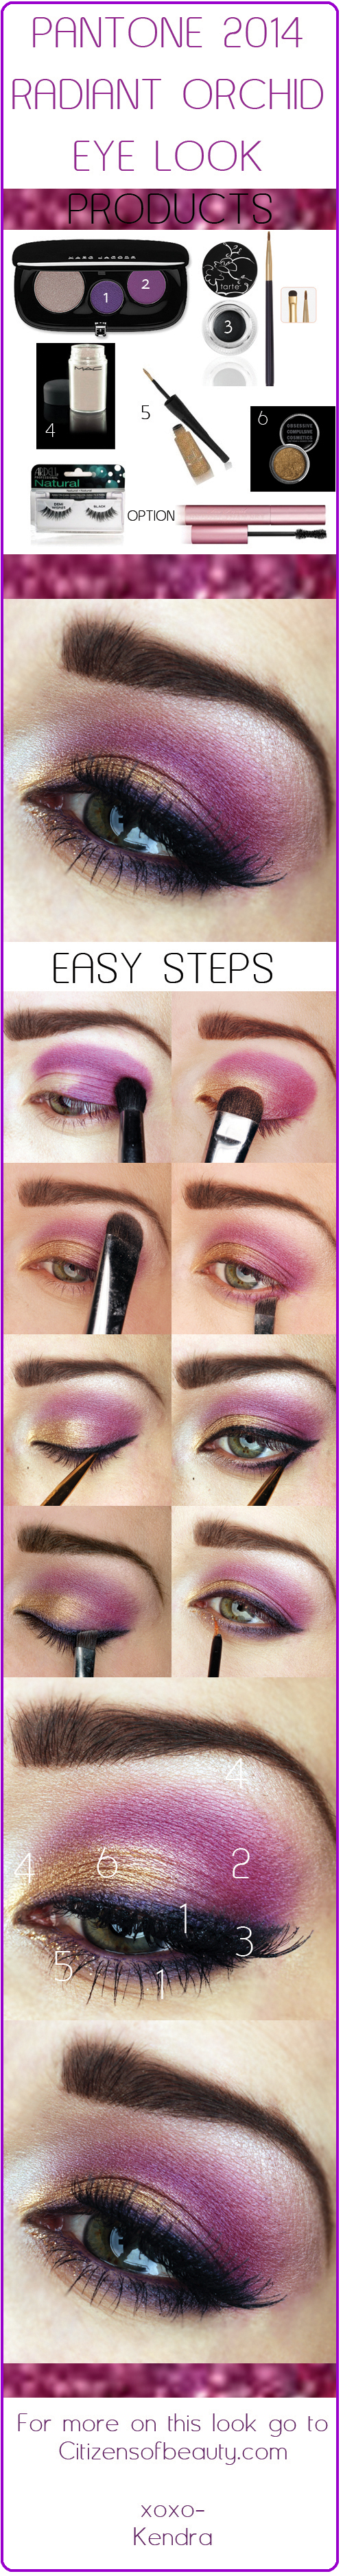 Pantone-2014-radiant-orchid-eye-look